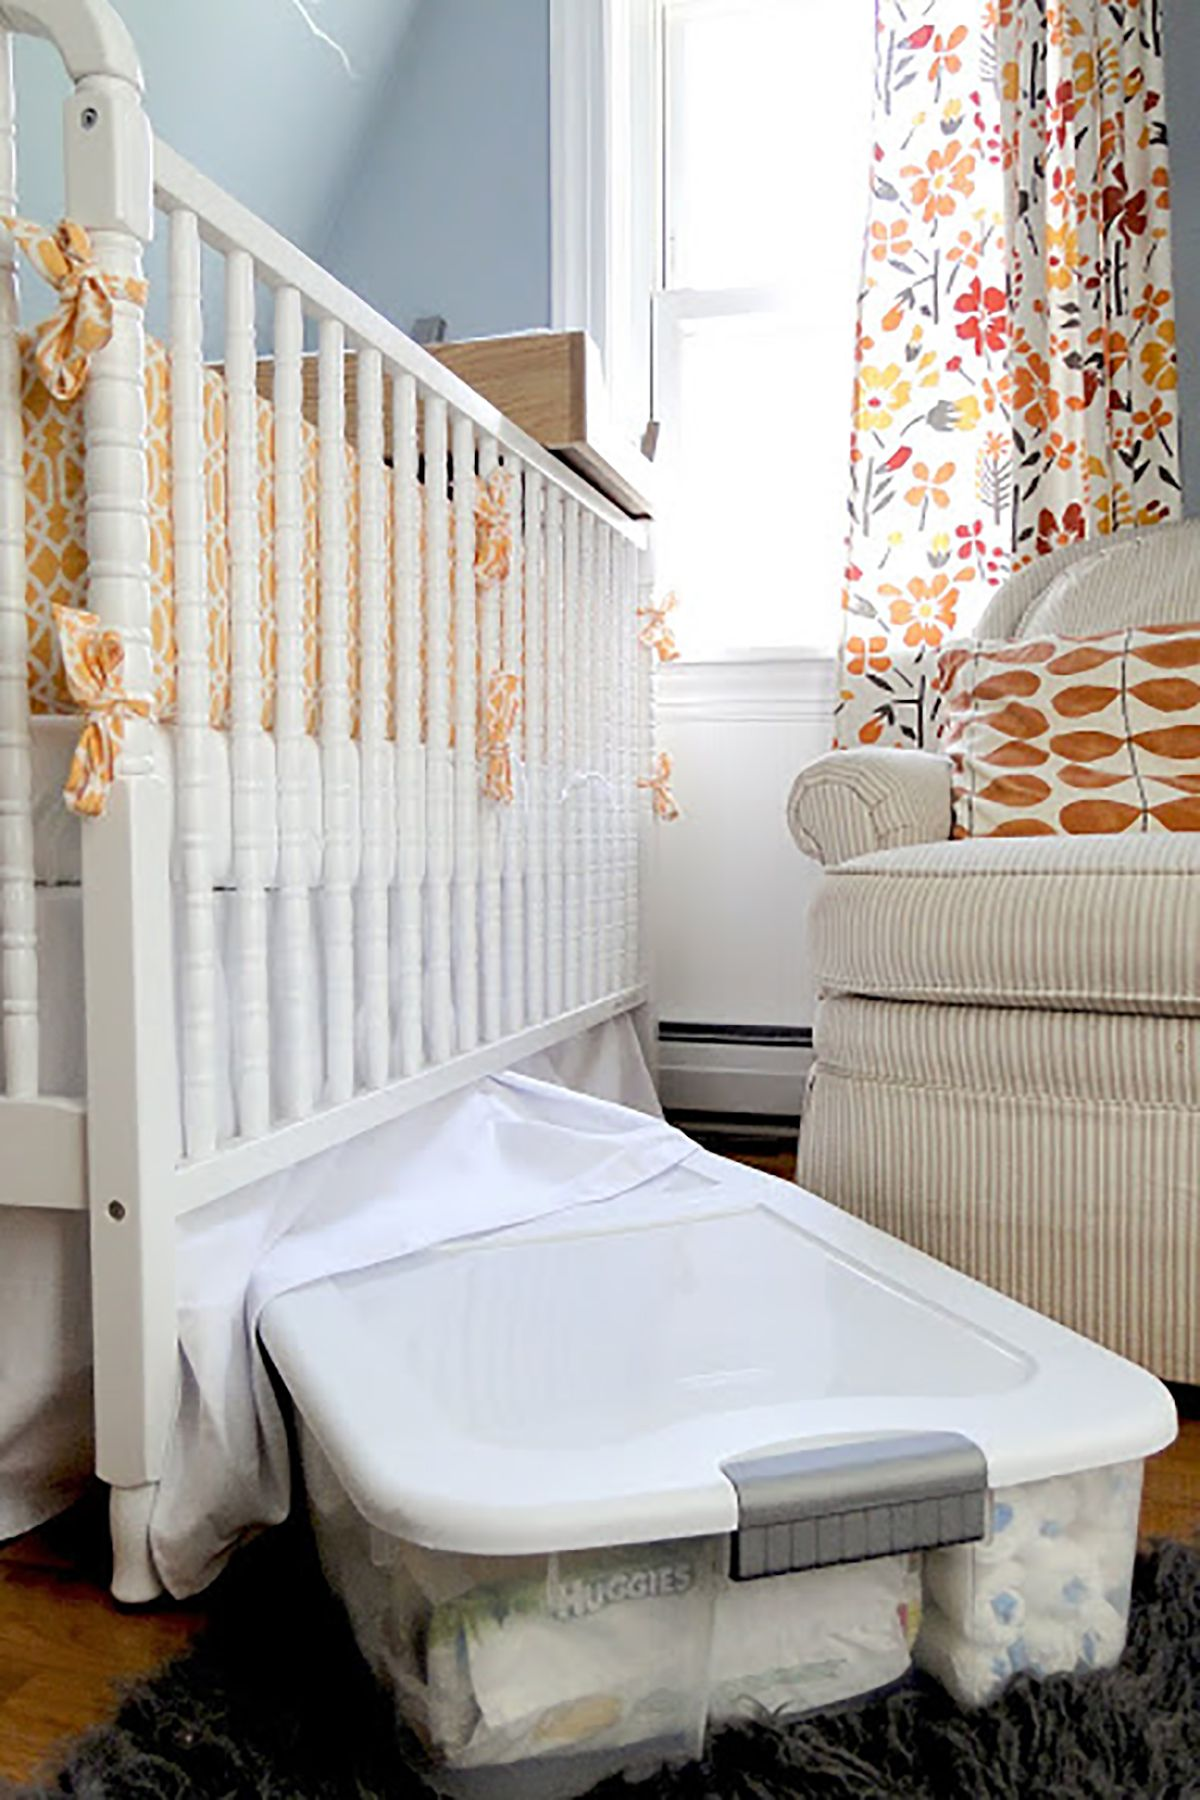 20 Best Baby Room Ideas - Nursery Design, Organization, And Storage Tips